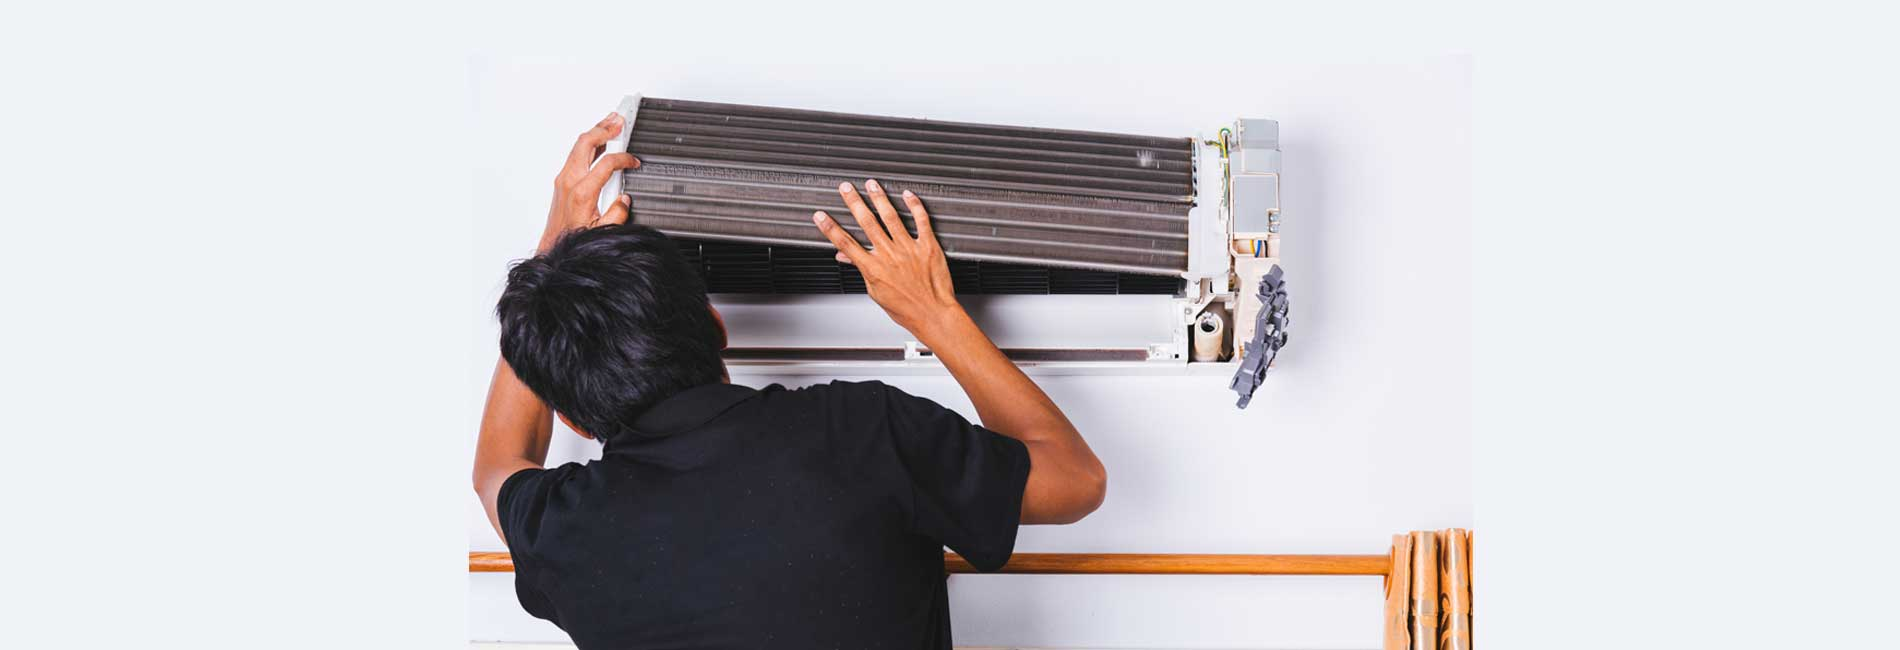 Bluestar Air Conditioner Service in Saidapet